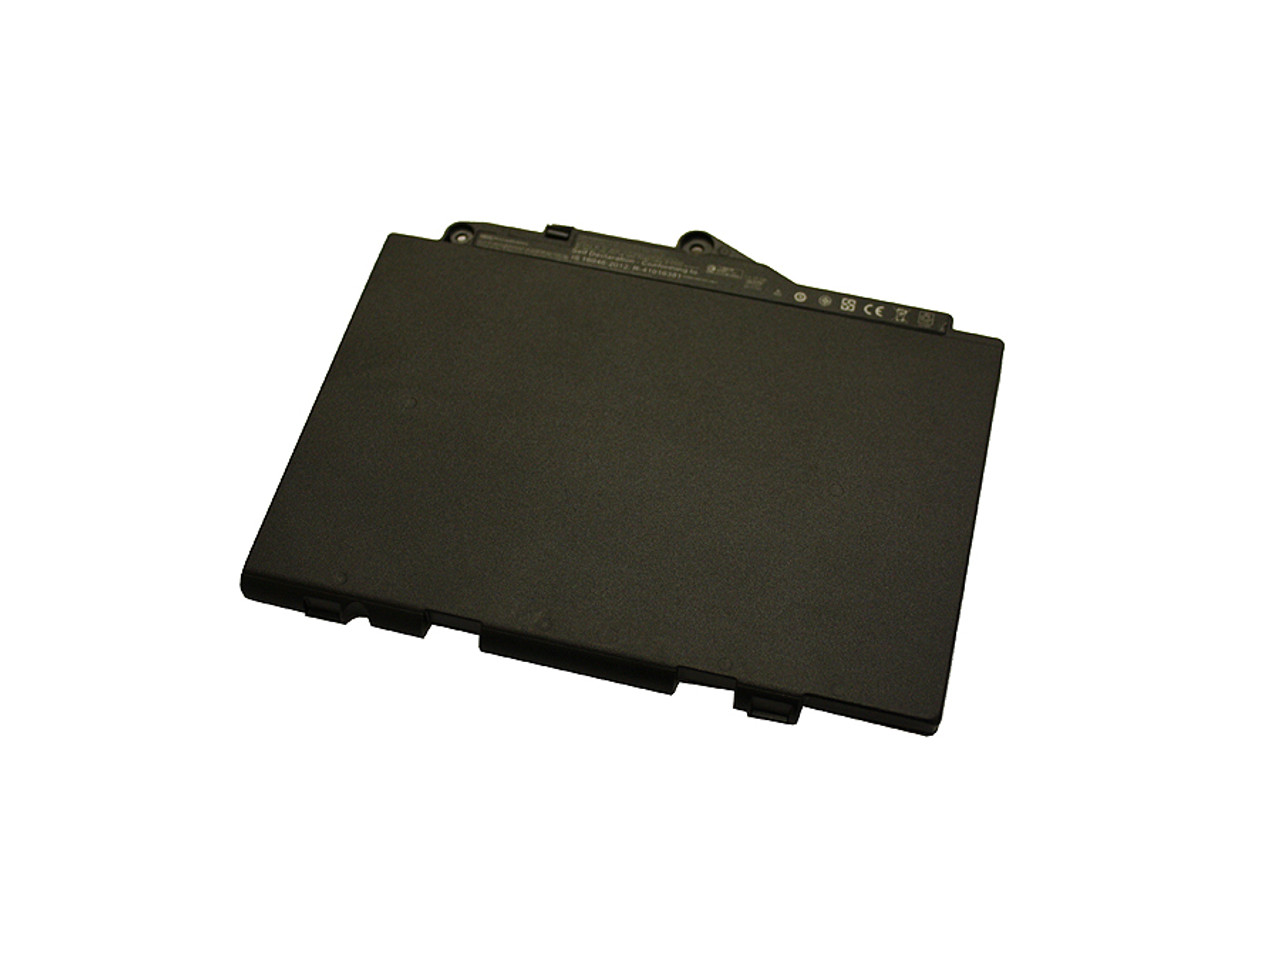 Replacement Battery for Elitebook 725 G3, 820 G3 series